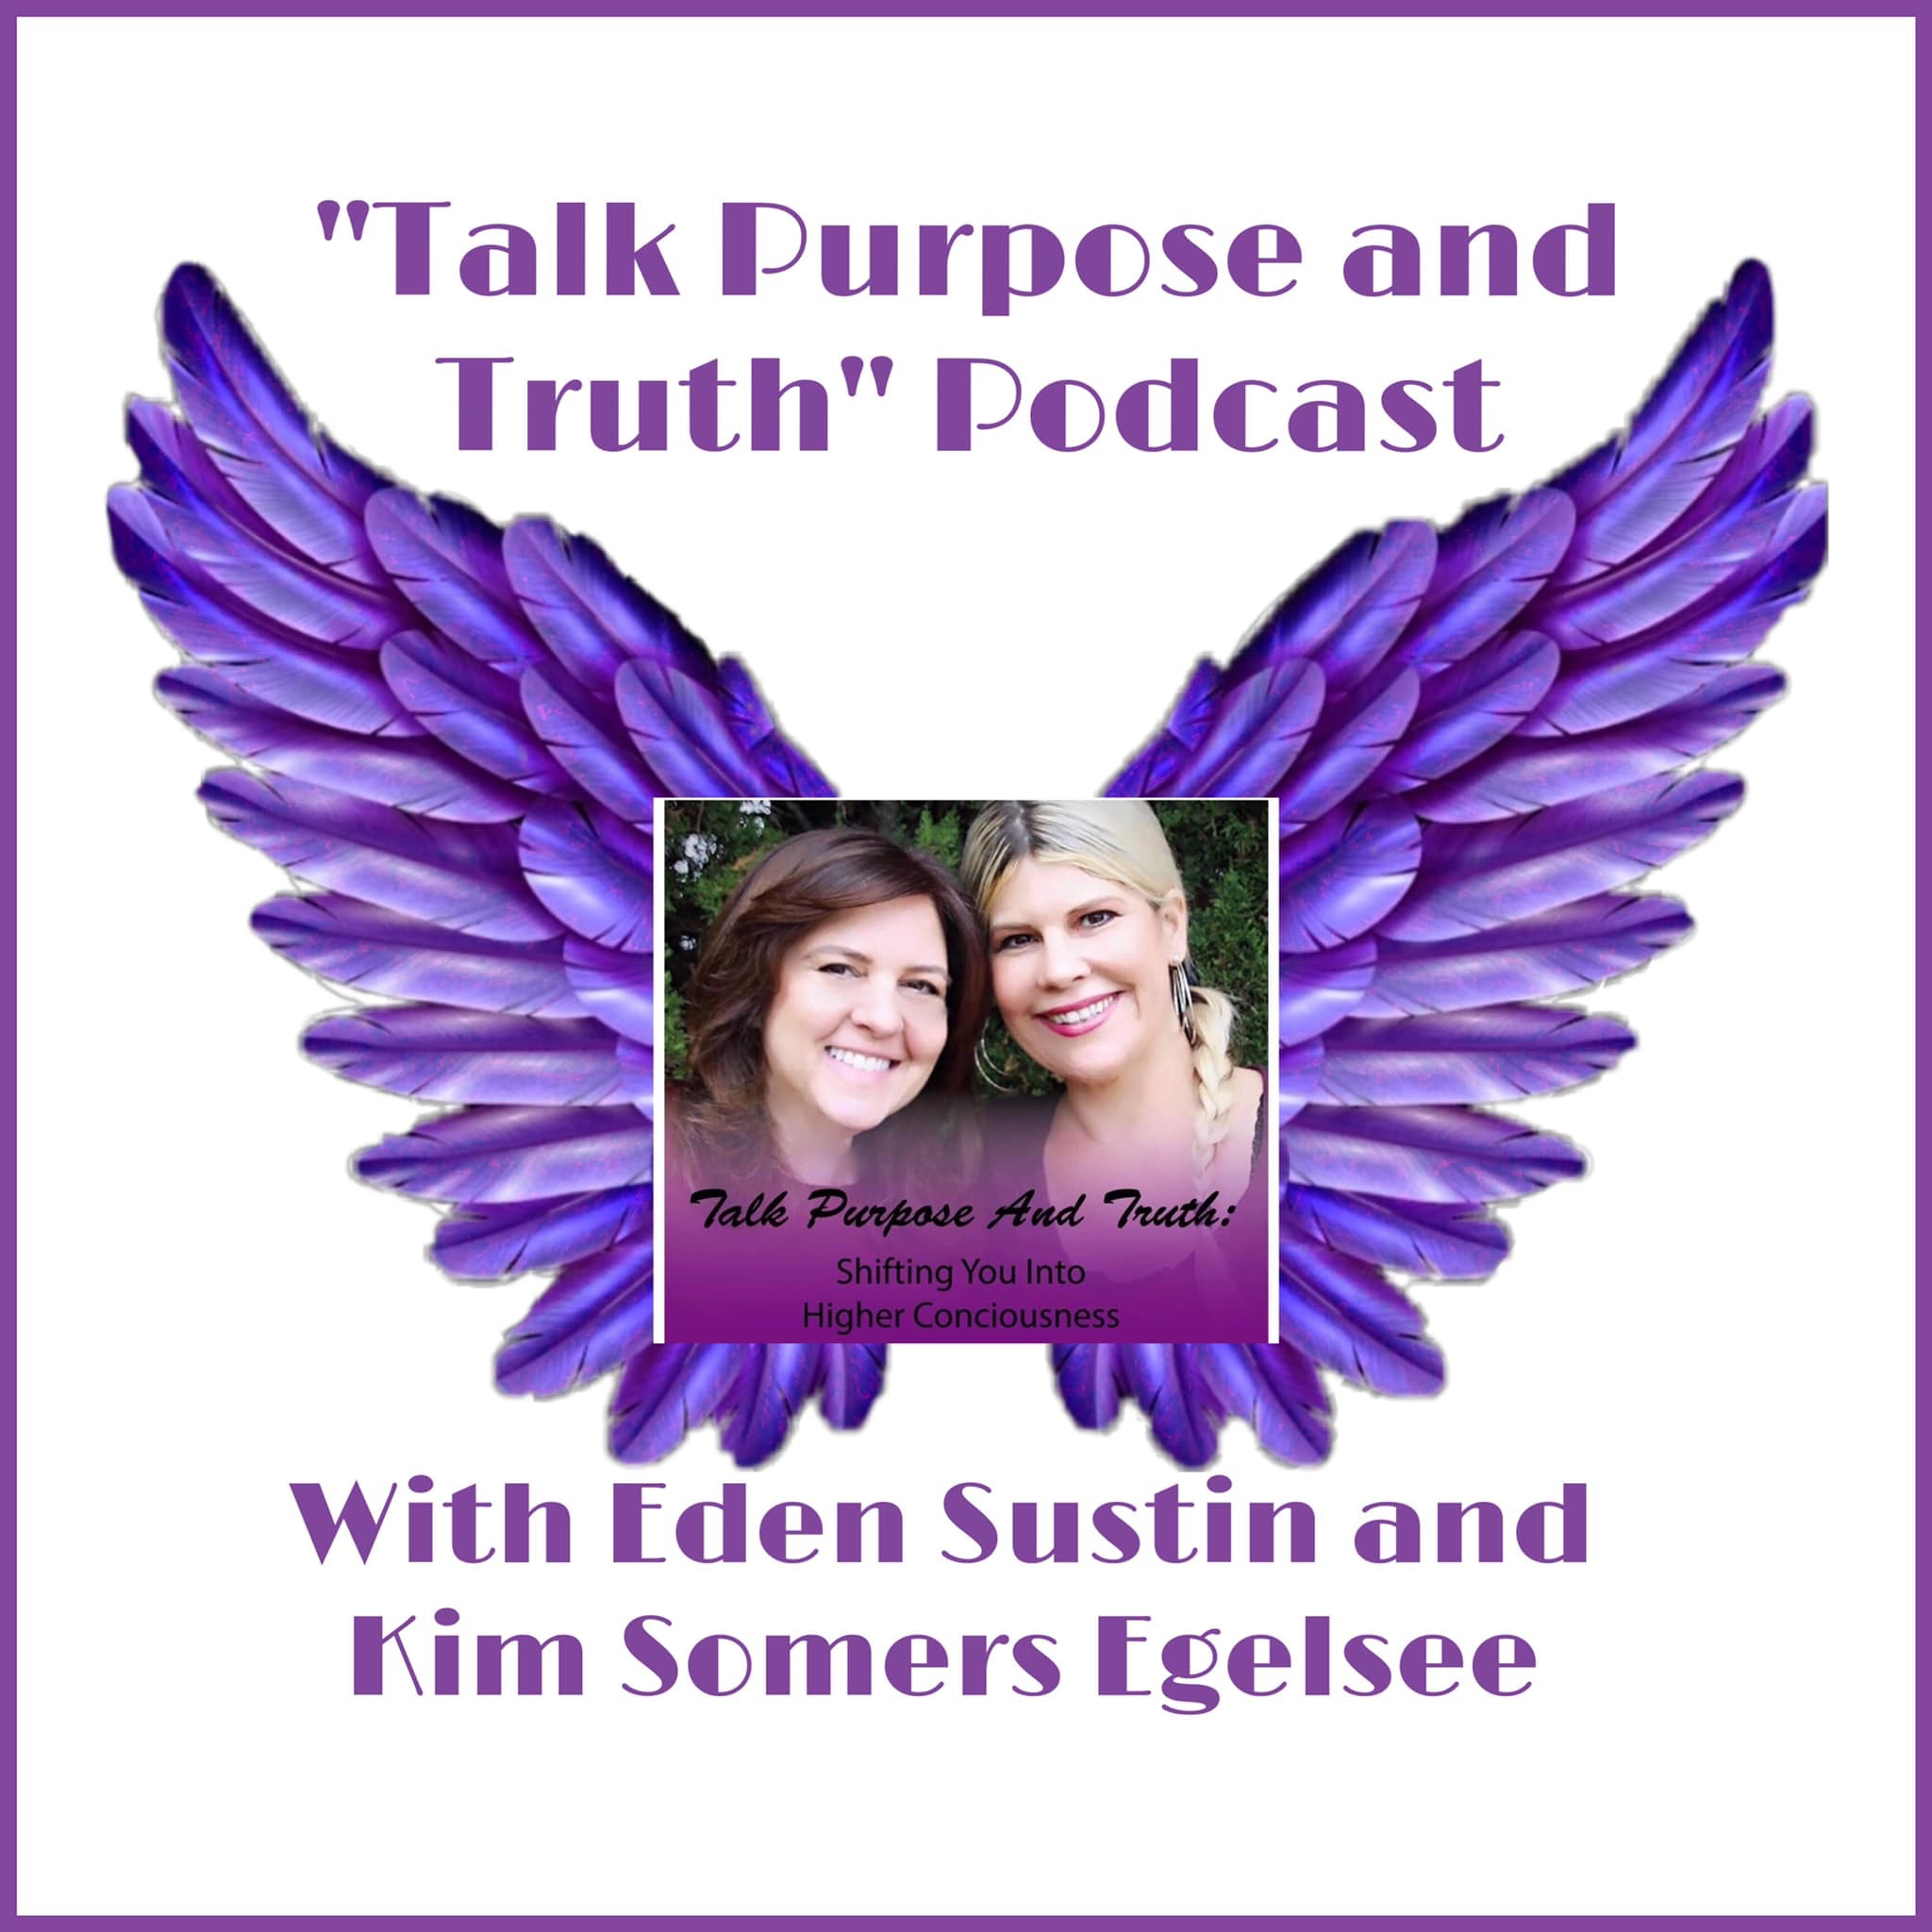 Talk Purpose and Truth